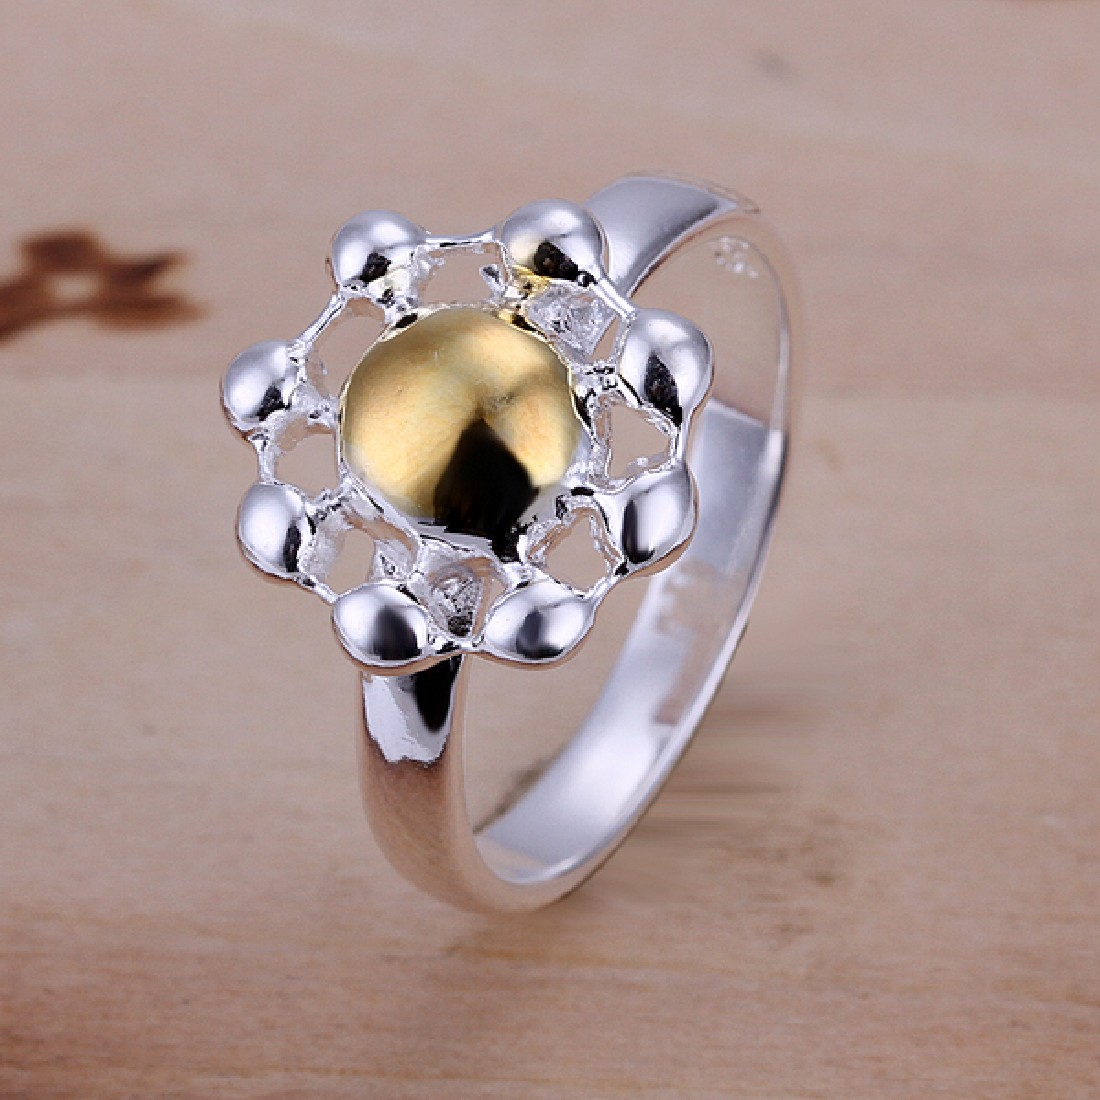 Lose Money Promotions! 925 silver ring, 925 silver fashion jewelry, Chrysanthemum Ring R112(China (Mainland))